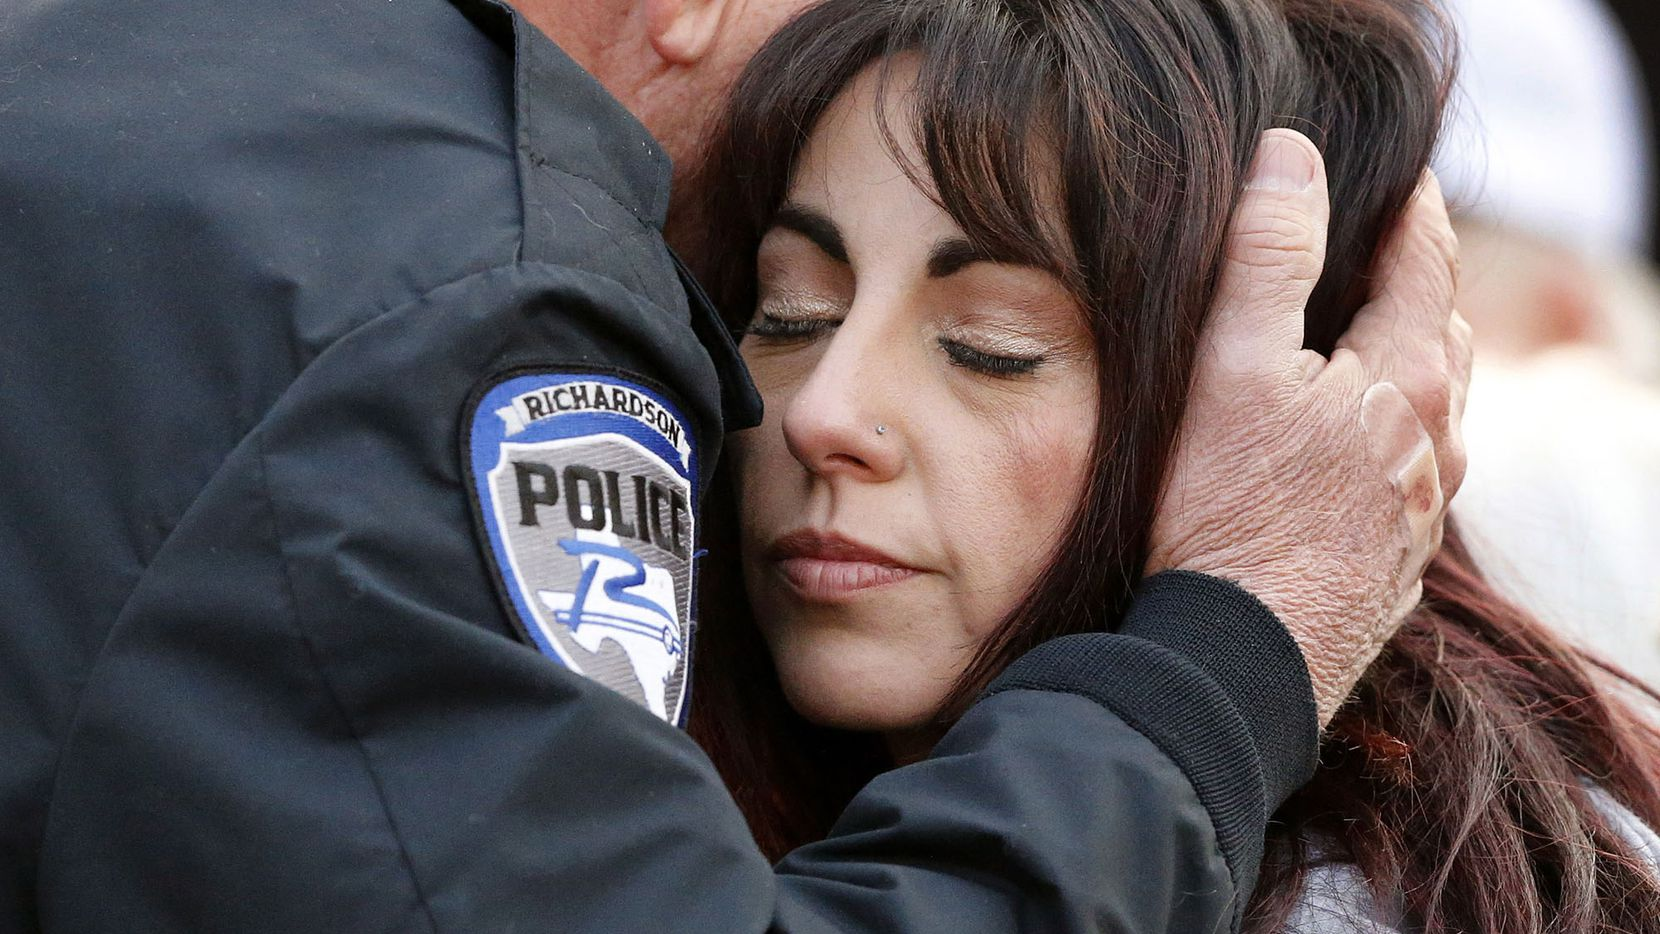 Richardson police chief Jimmy Spivey hugs Nicole Sherrard, wife of slain Richardson police officer David Sherrard, after Spivey spoke during a vigil for Sherrard in Richardson, Texas, Sunday, February 11, 2017.